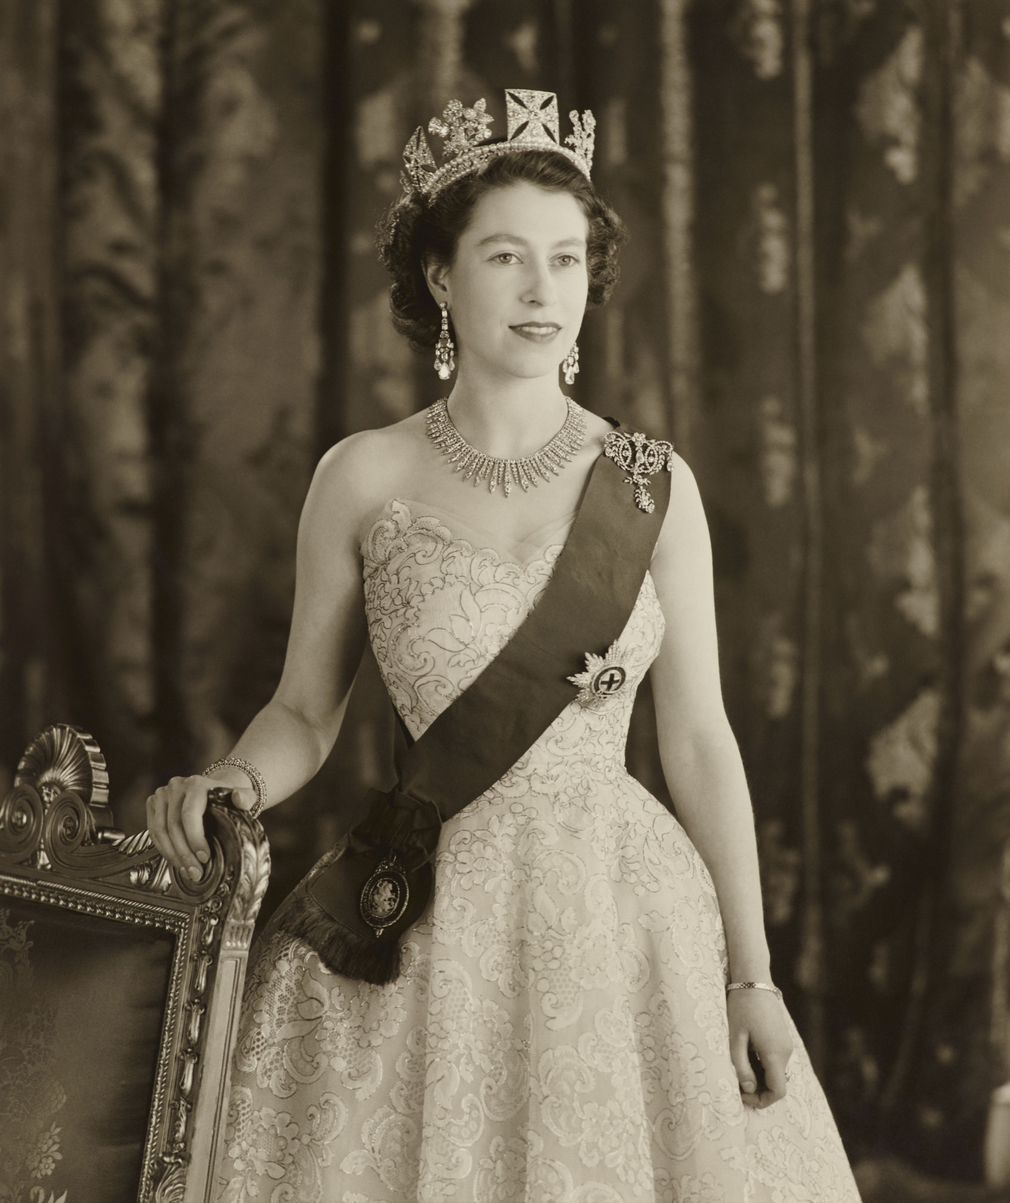 Her Majesty The Queen wearing the Diamond Diadem